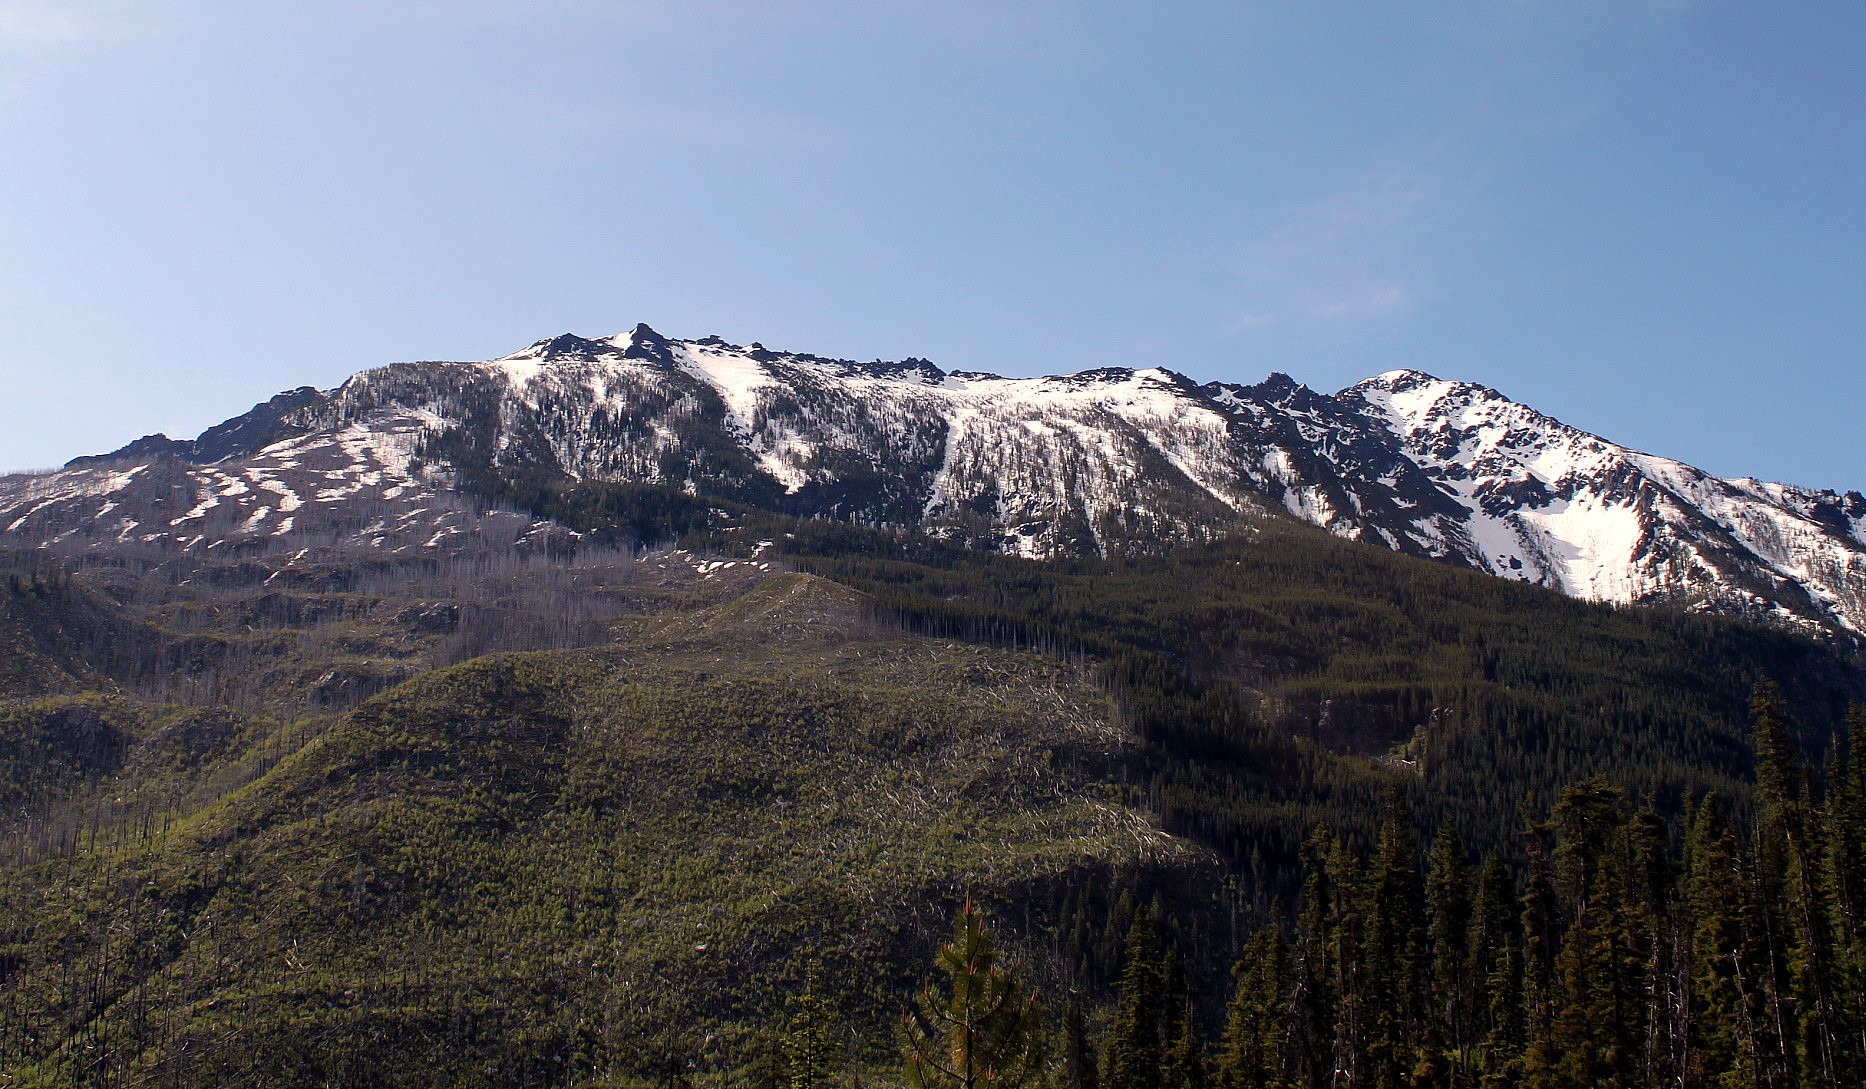 Cannon Mountain from the trail